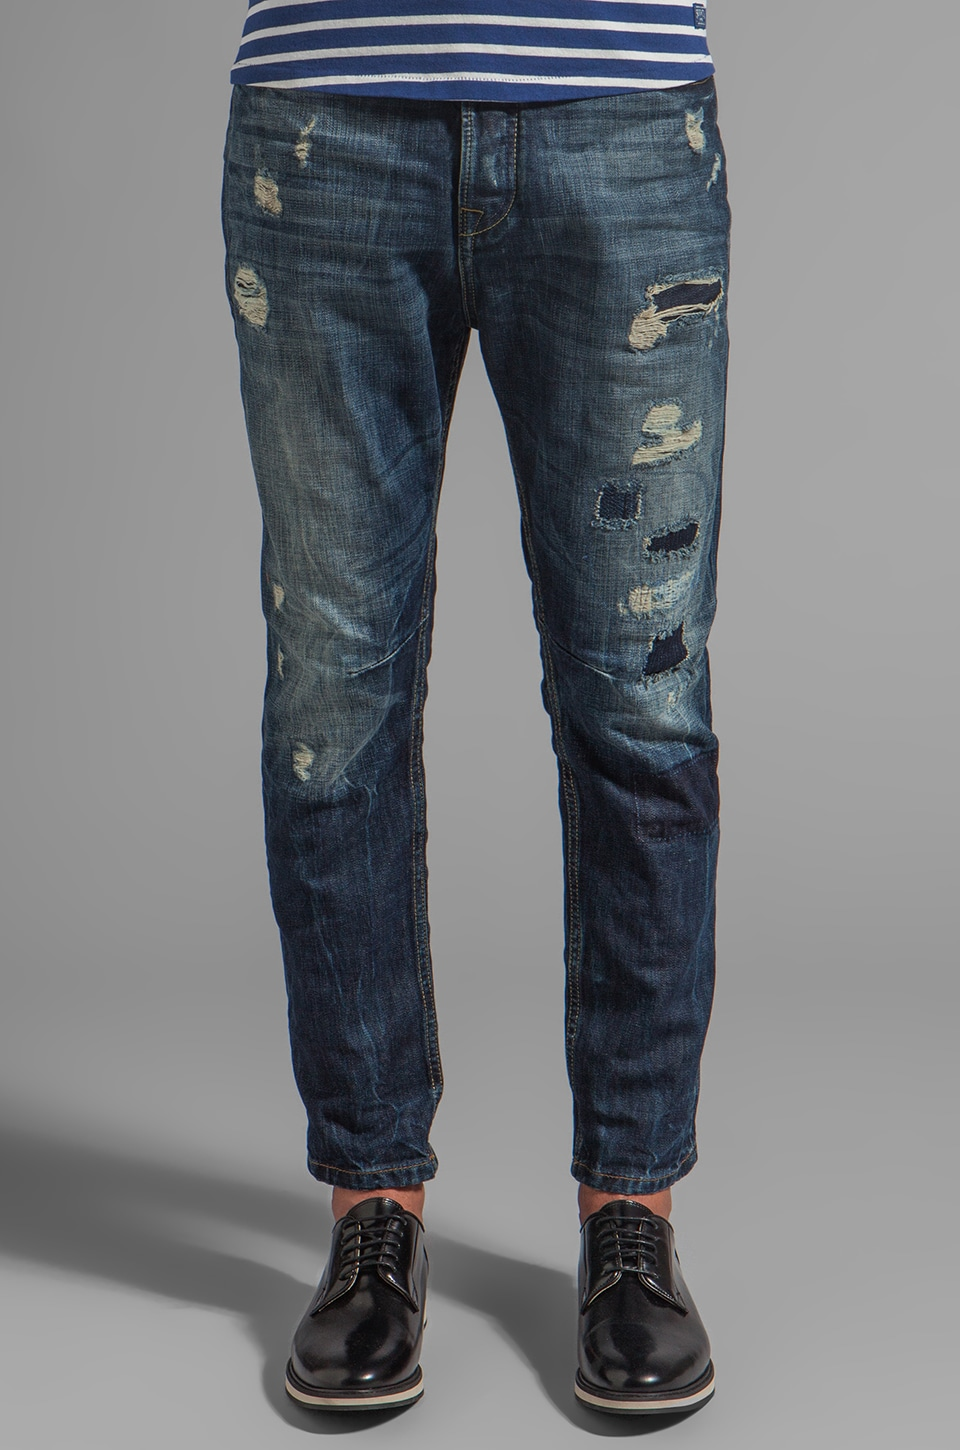 Scotch & Soda Stump Loose Taper Jean in Directors Cut